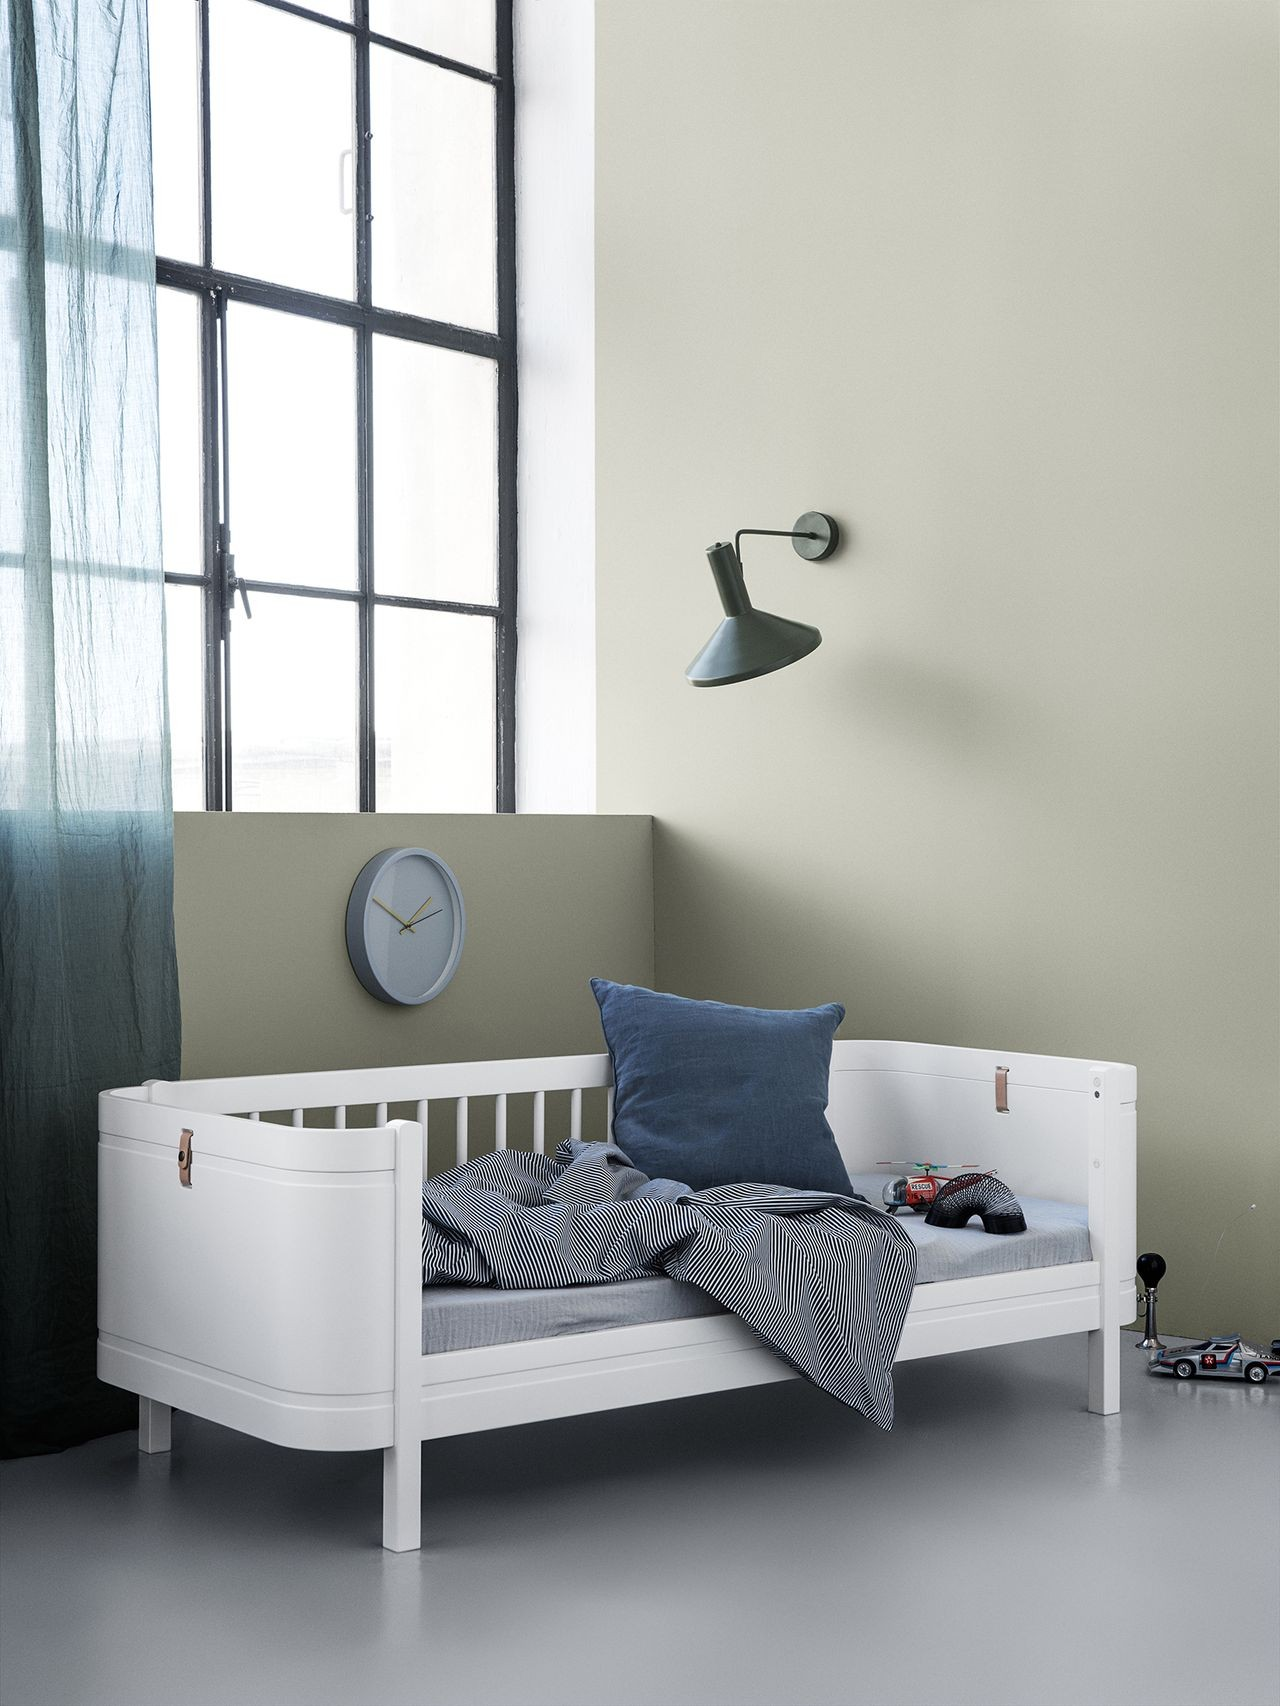 Oliver Furniture Wood Mini+ Juniorbett kaufen - Kleine Fabriek